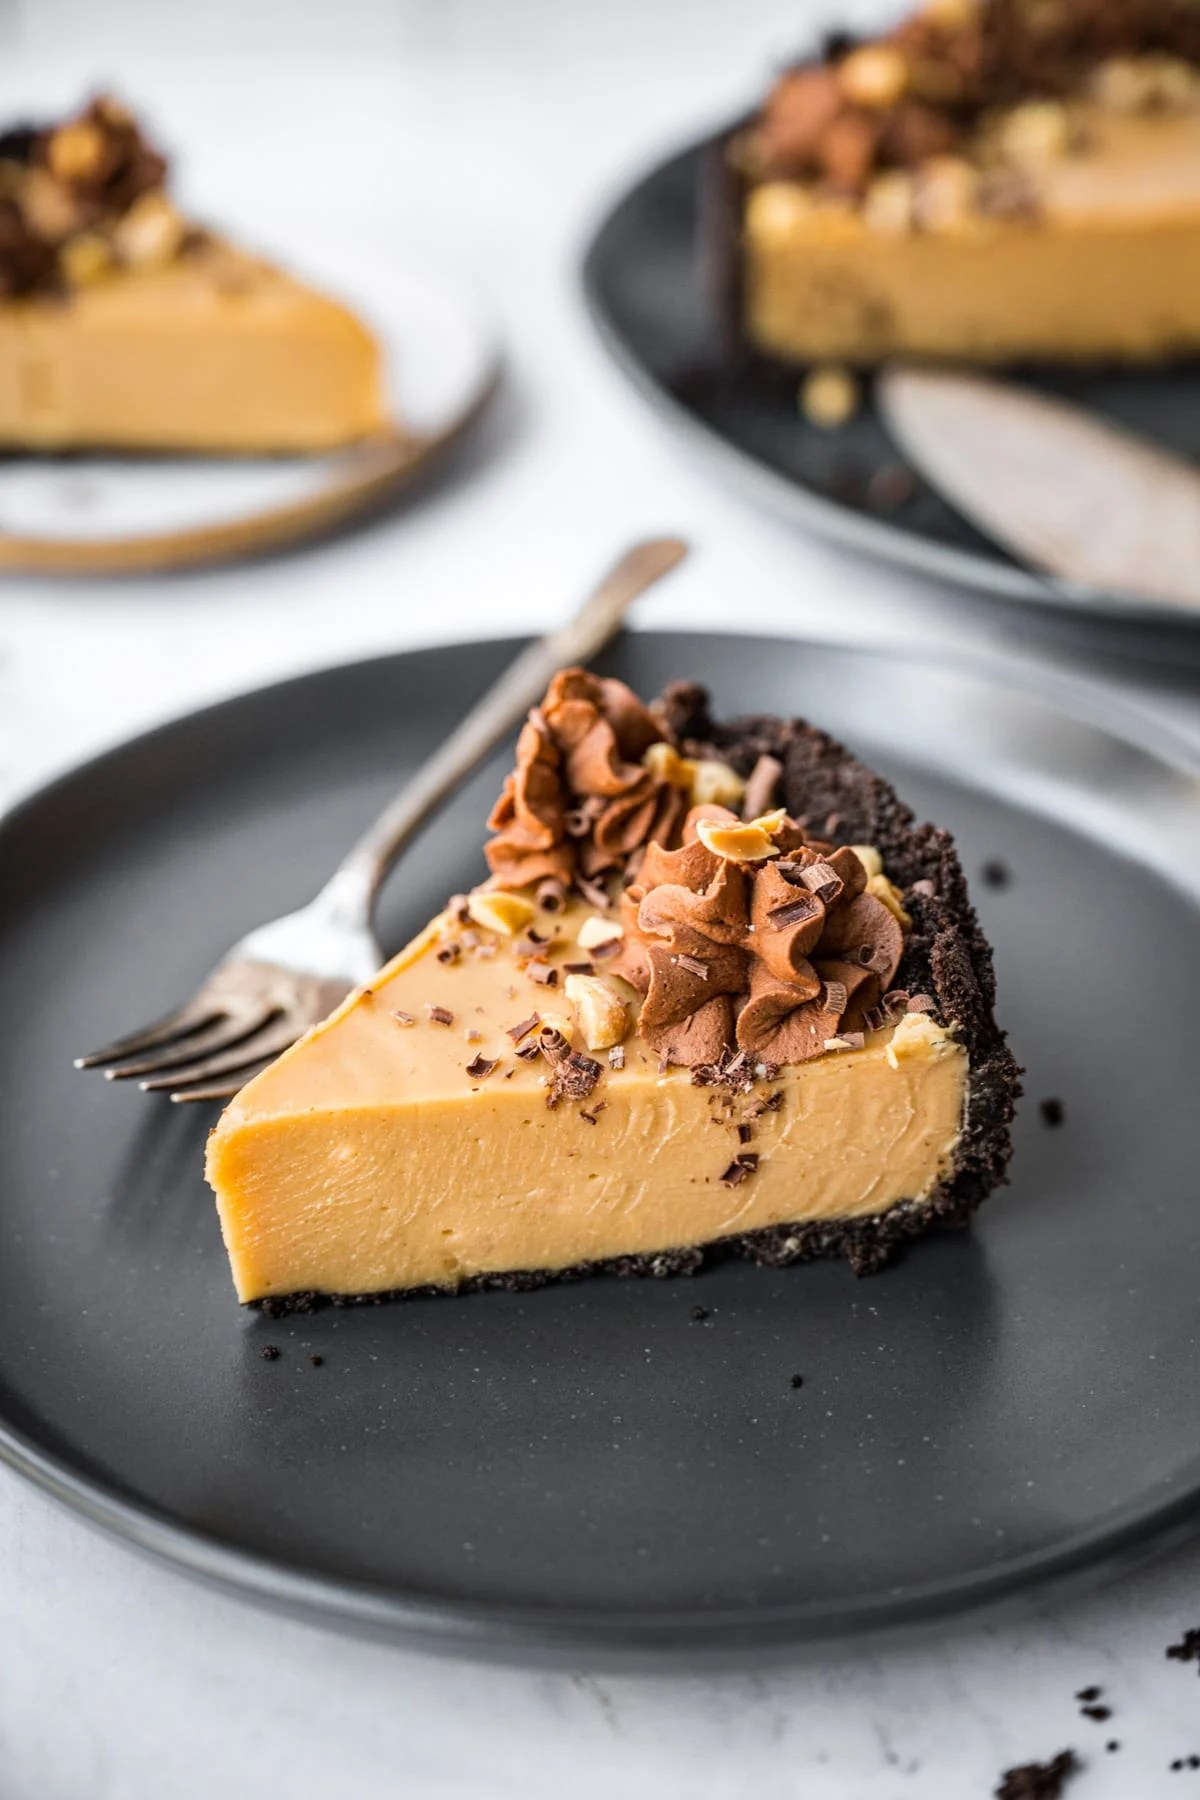 close up view of peanut butter pie with chocolate cookie crust on black plate.